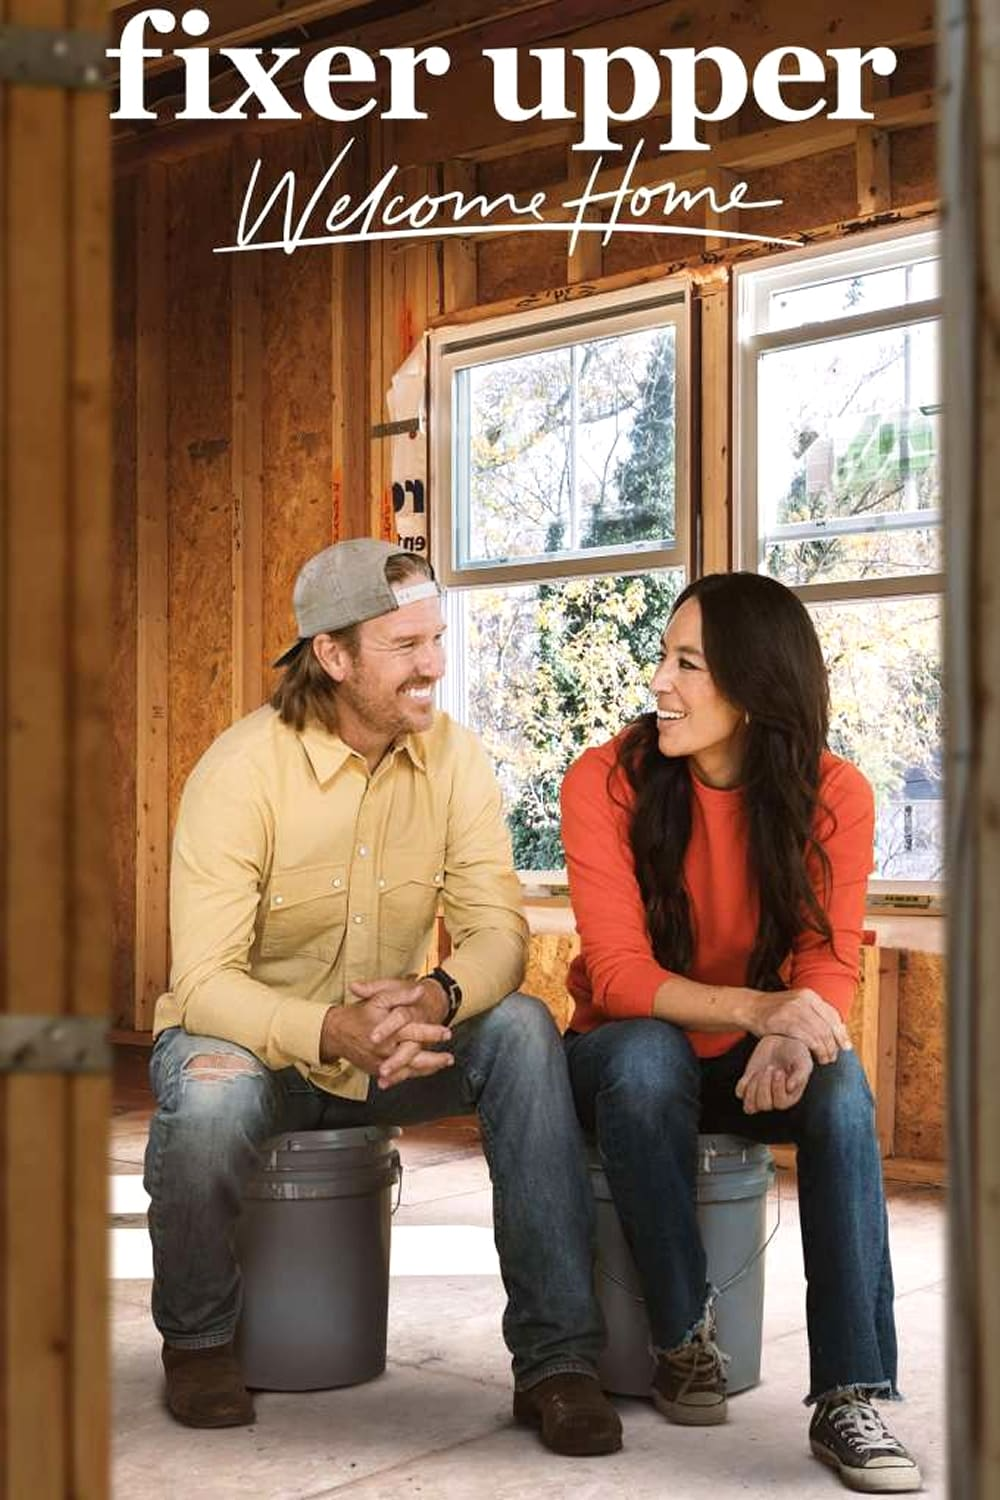 Fixer Upper: Welcome Home (2021)